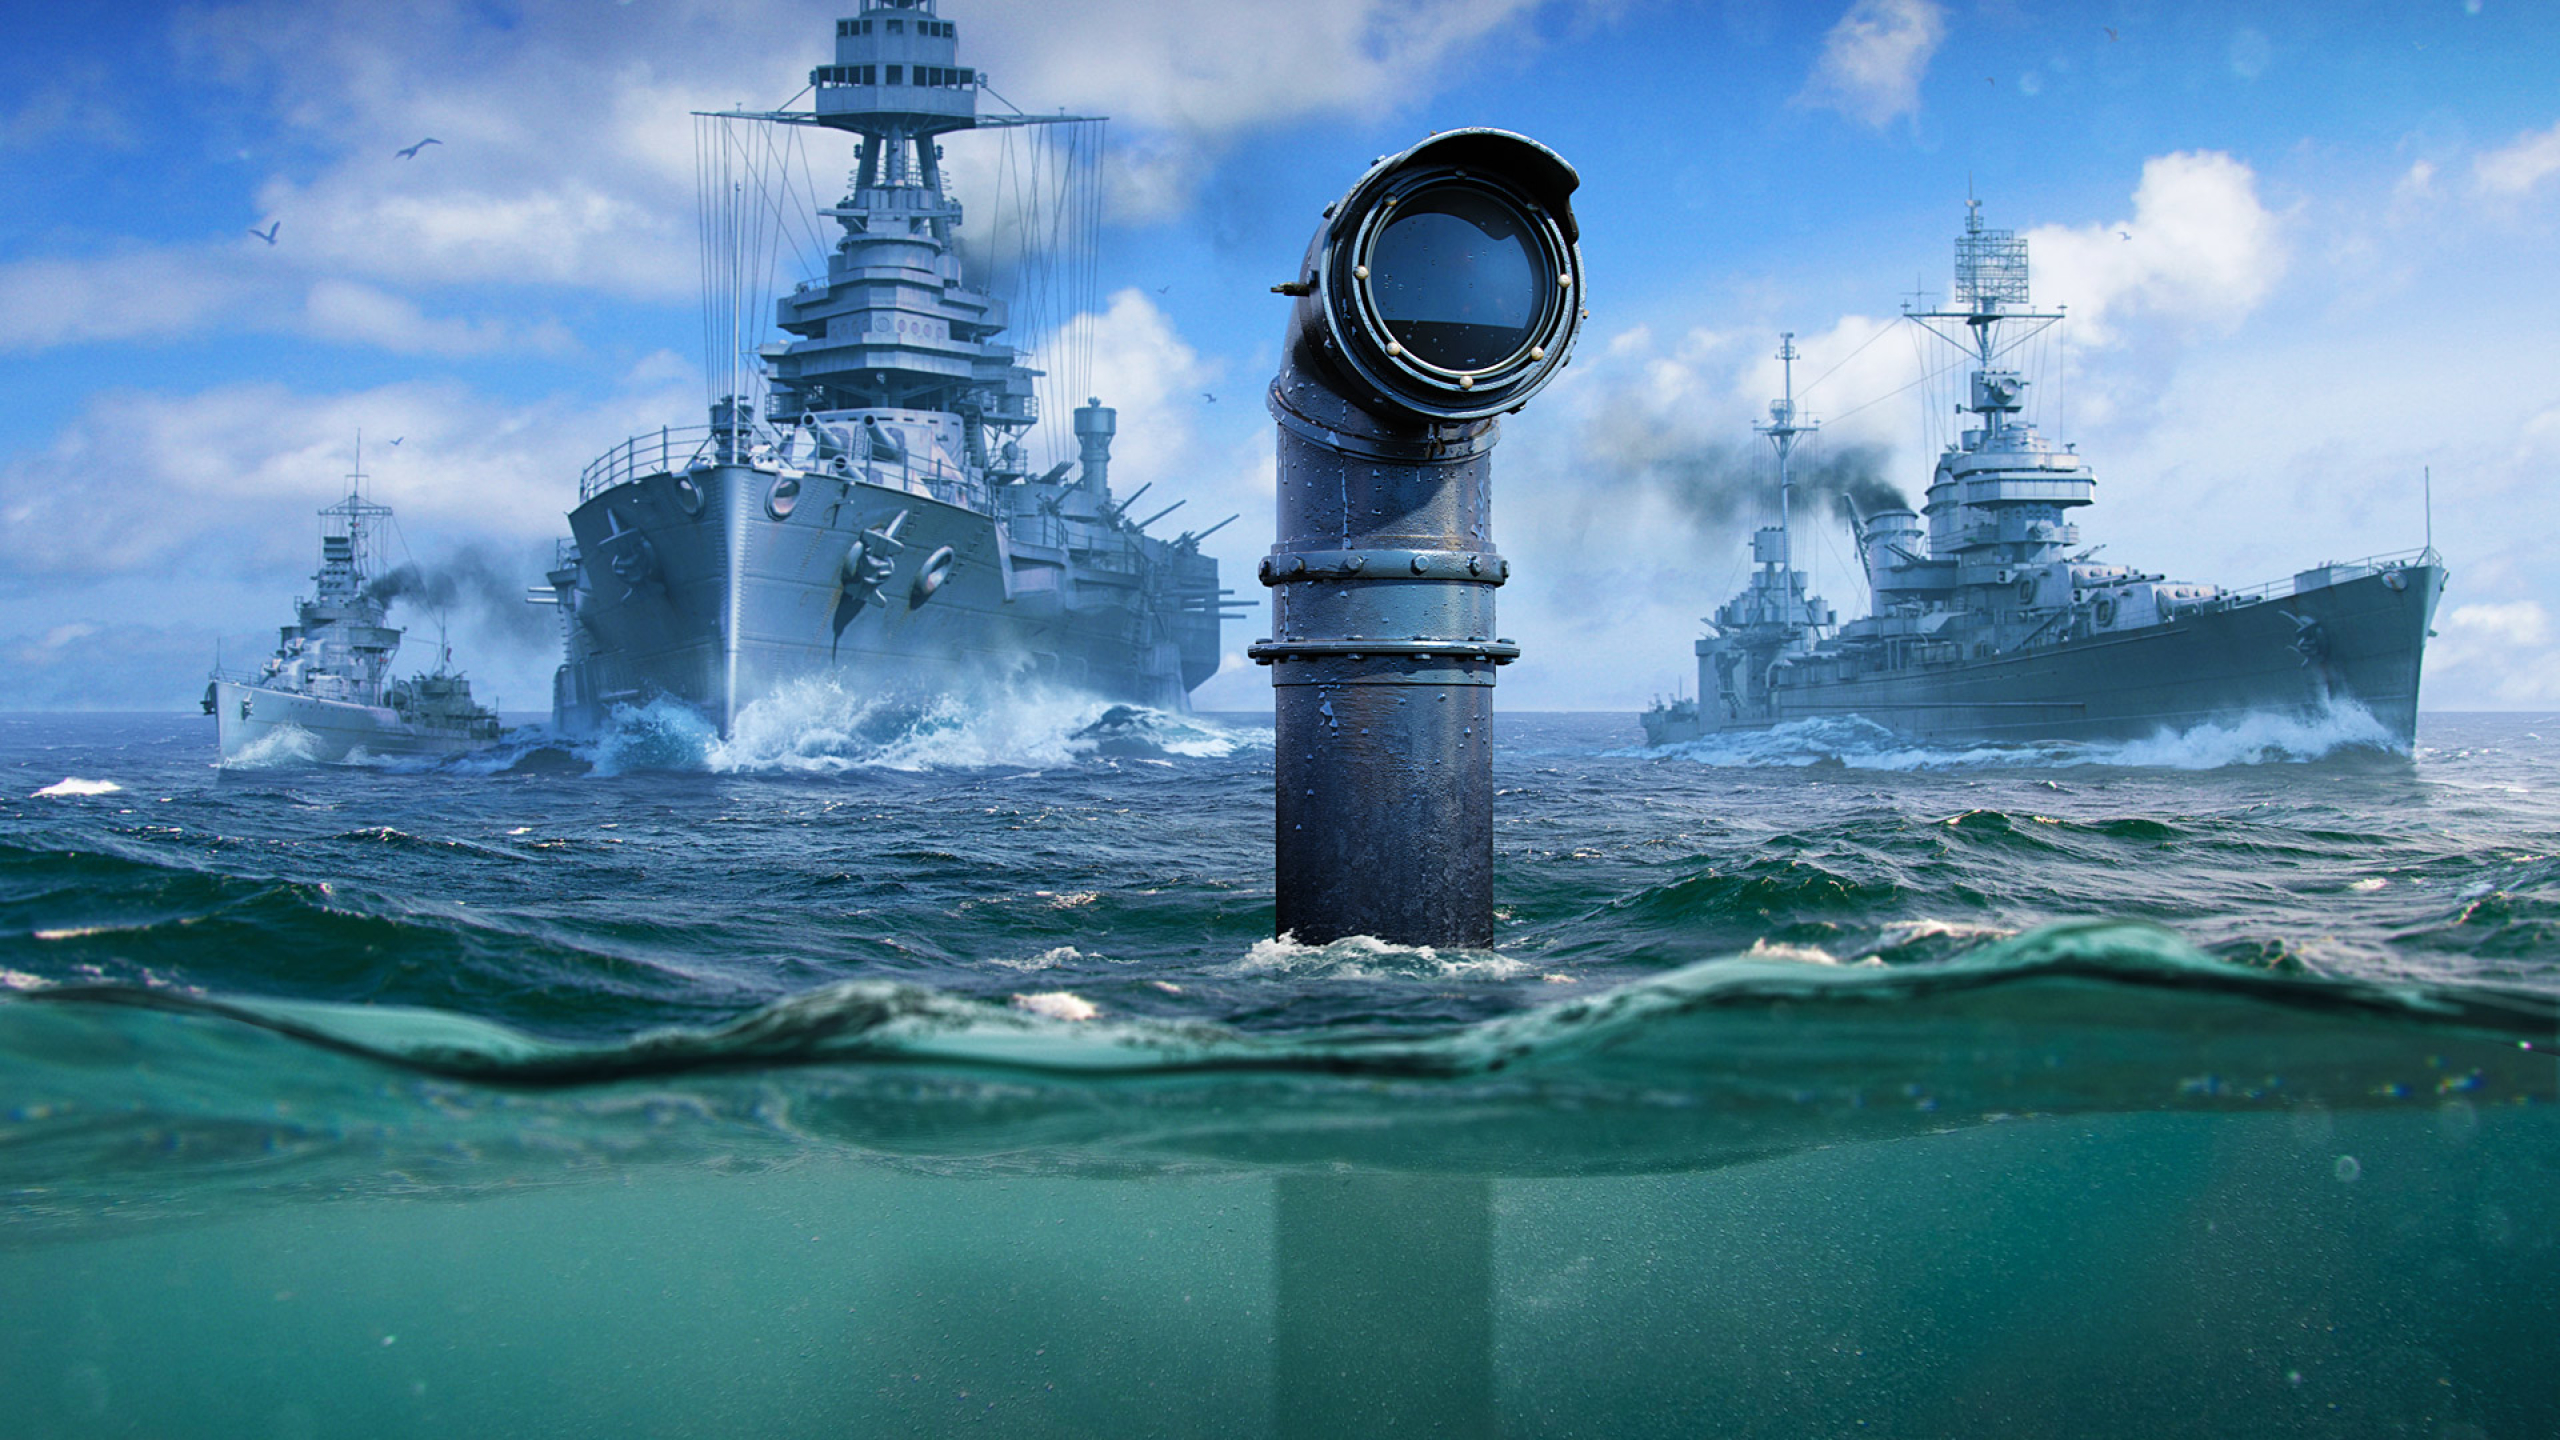 2560x1440 World Of Warships Submarine 1440p Resolution Wallpaper